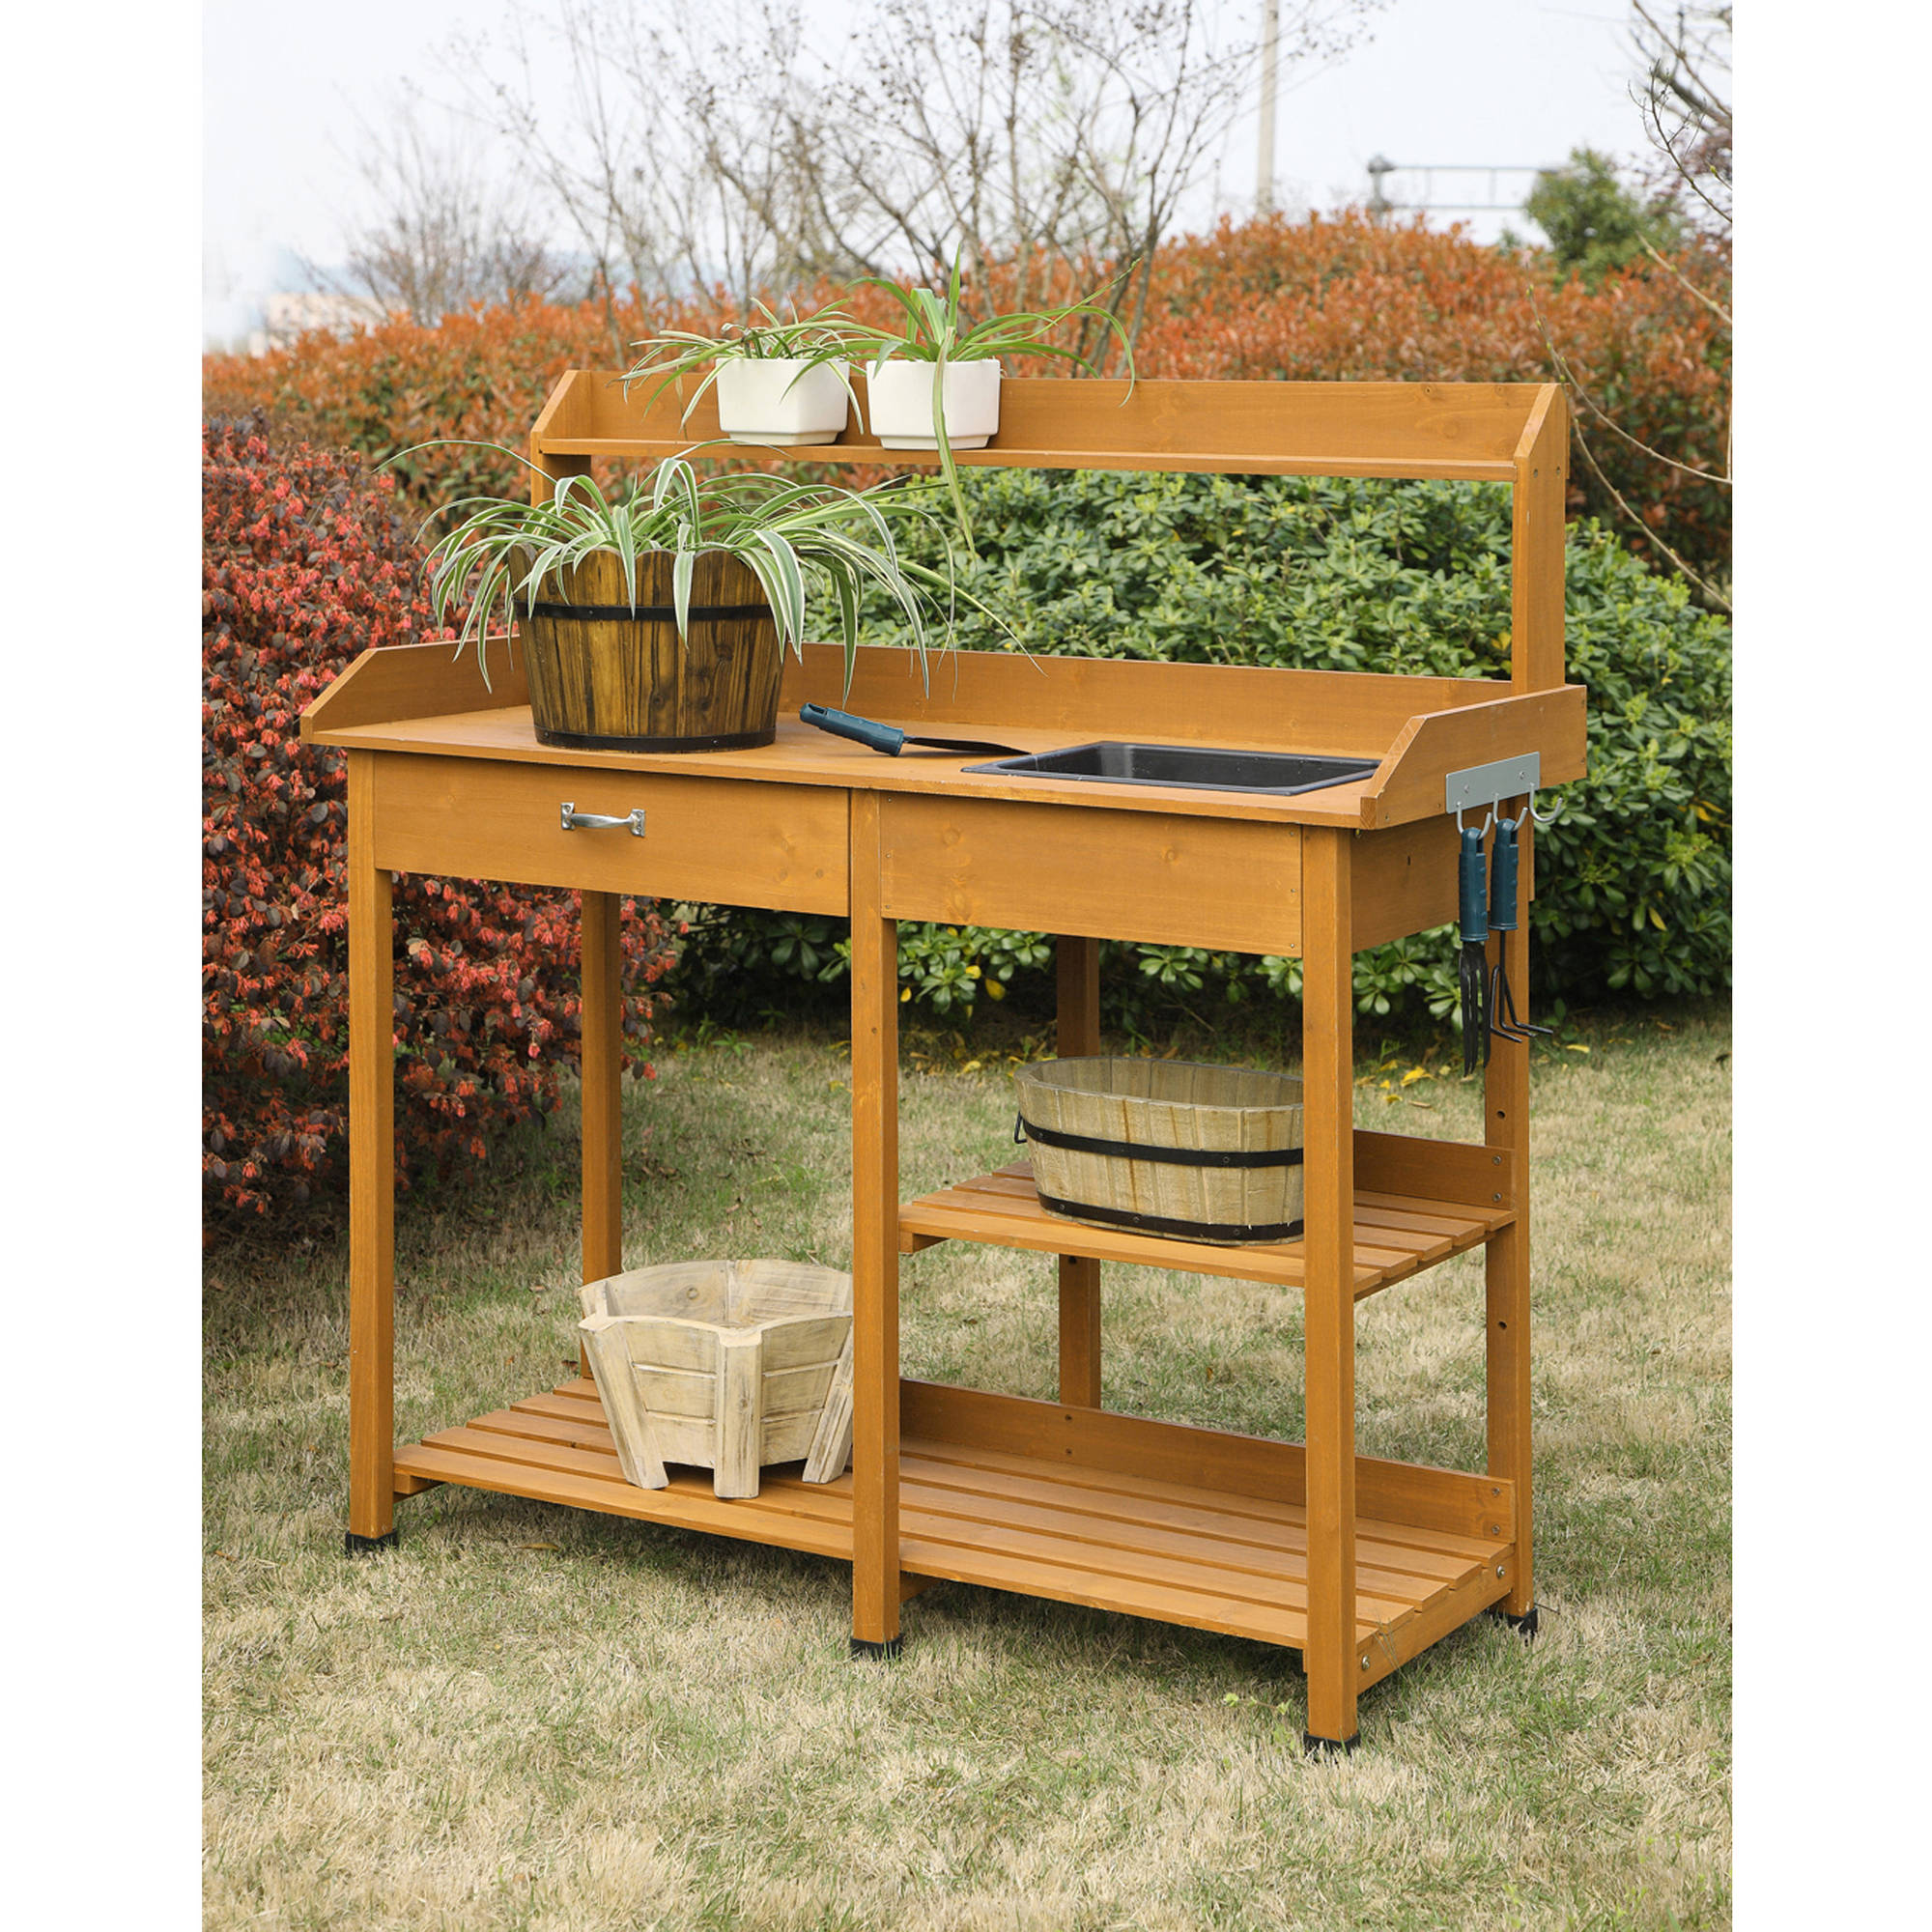 Outdoor Potting Bench With Storage Best Storage Design 2017